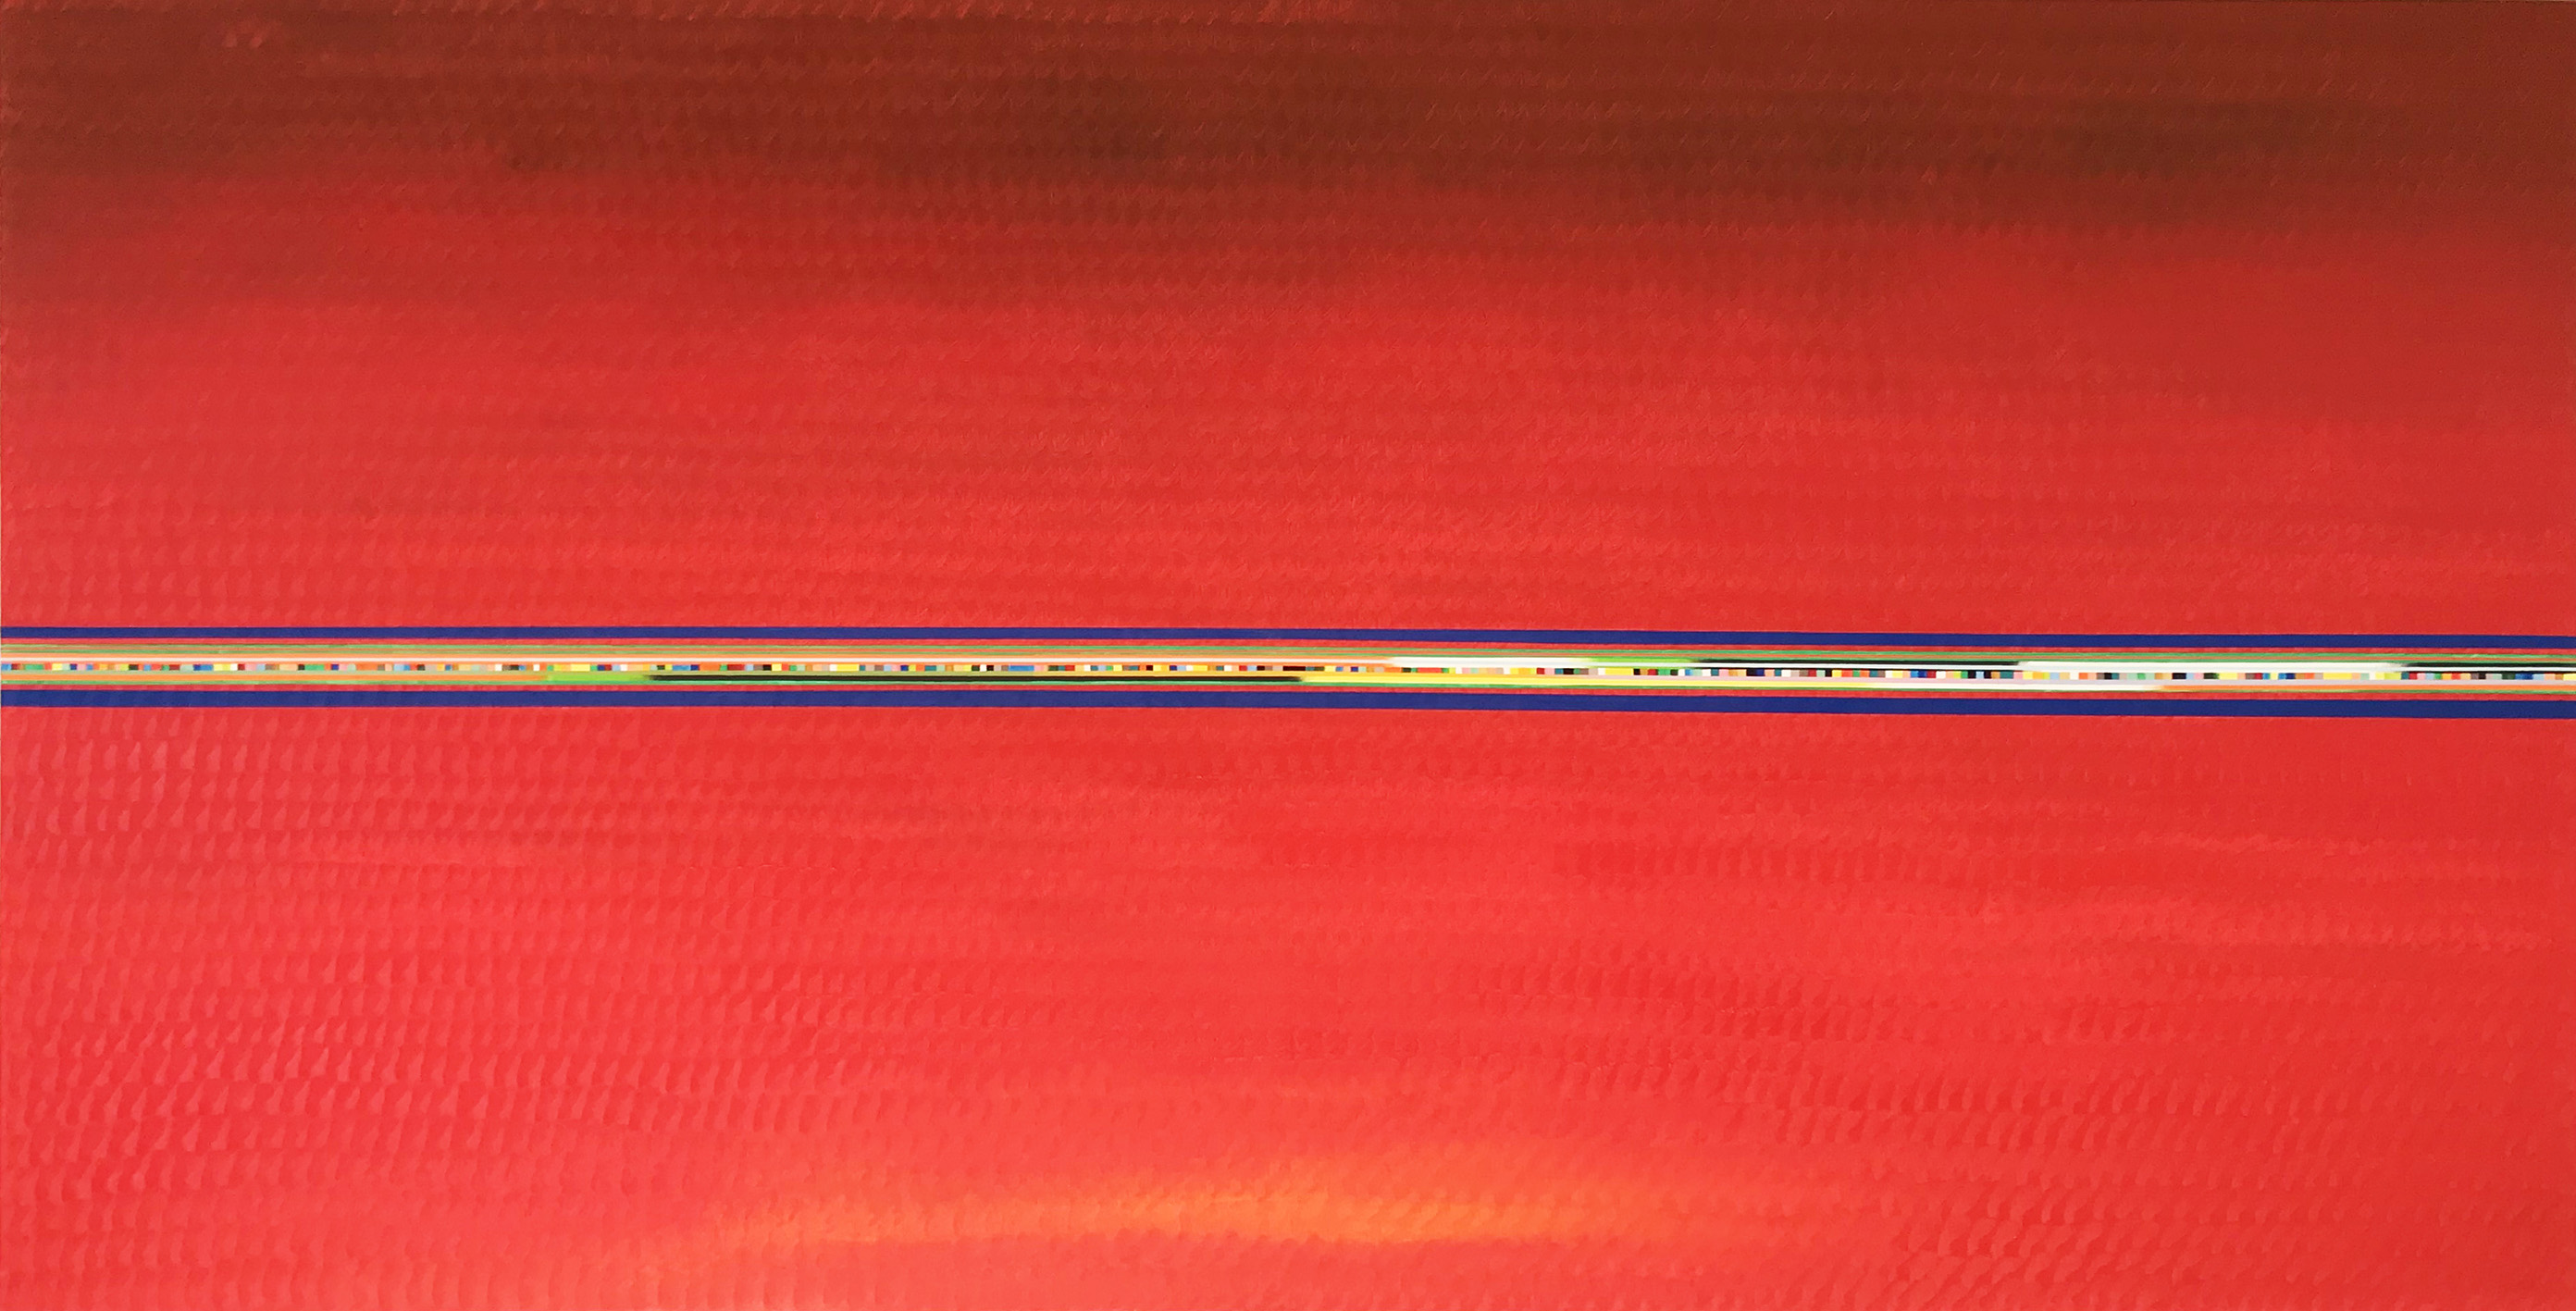 Red painting 2 (120x239cm) 2018-2019 (private collection)